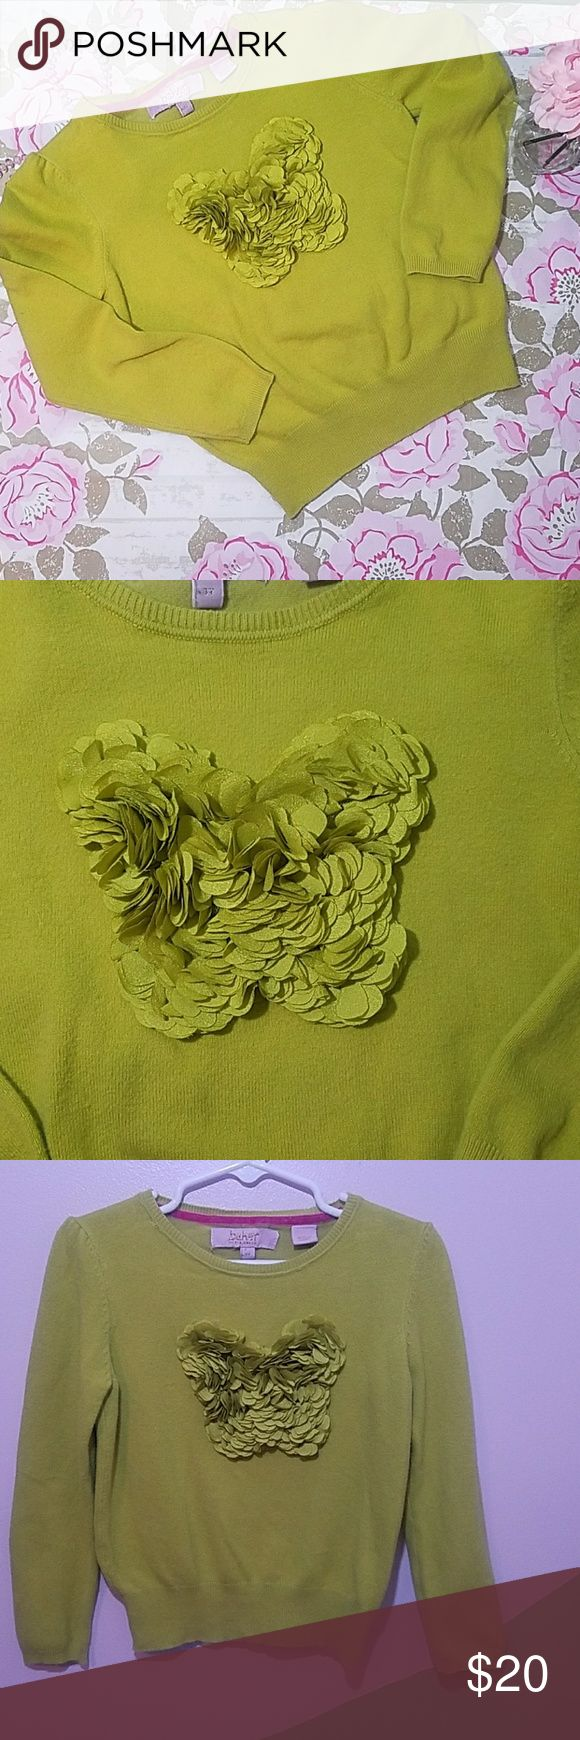 💜Ted Baker Sweater💜 Beautiful Green sweater with beautiful layered butterfly in front Excellent condition  Baker by Designer Ted Baker 3T Baker by Ted Baker Shirts & Tops